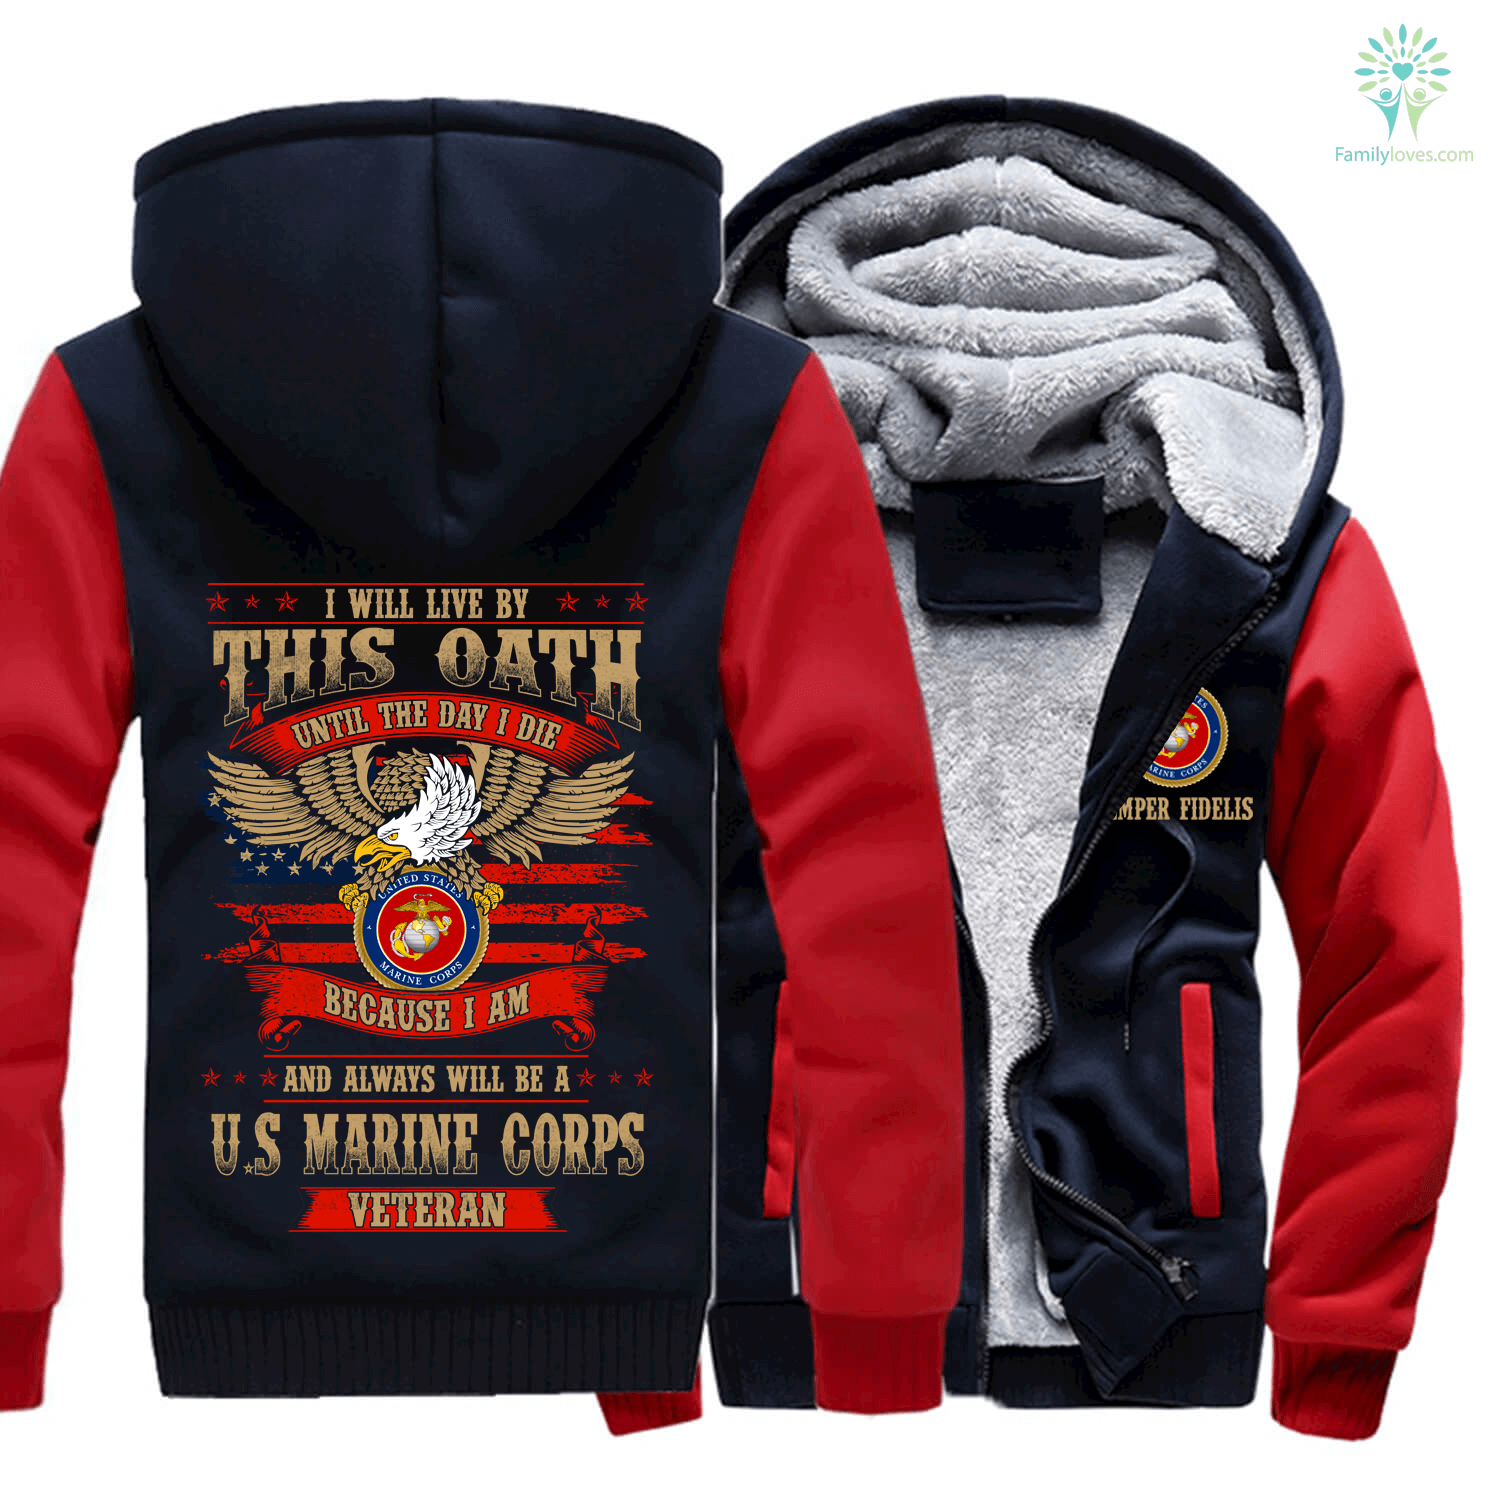 i-will-live_be5aaf4d-893b-530e-6091-1131f0c77a3b I will live by this oath until the day I die because I am and always will be a U.S marine corps veteran hoodie  %tag